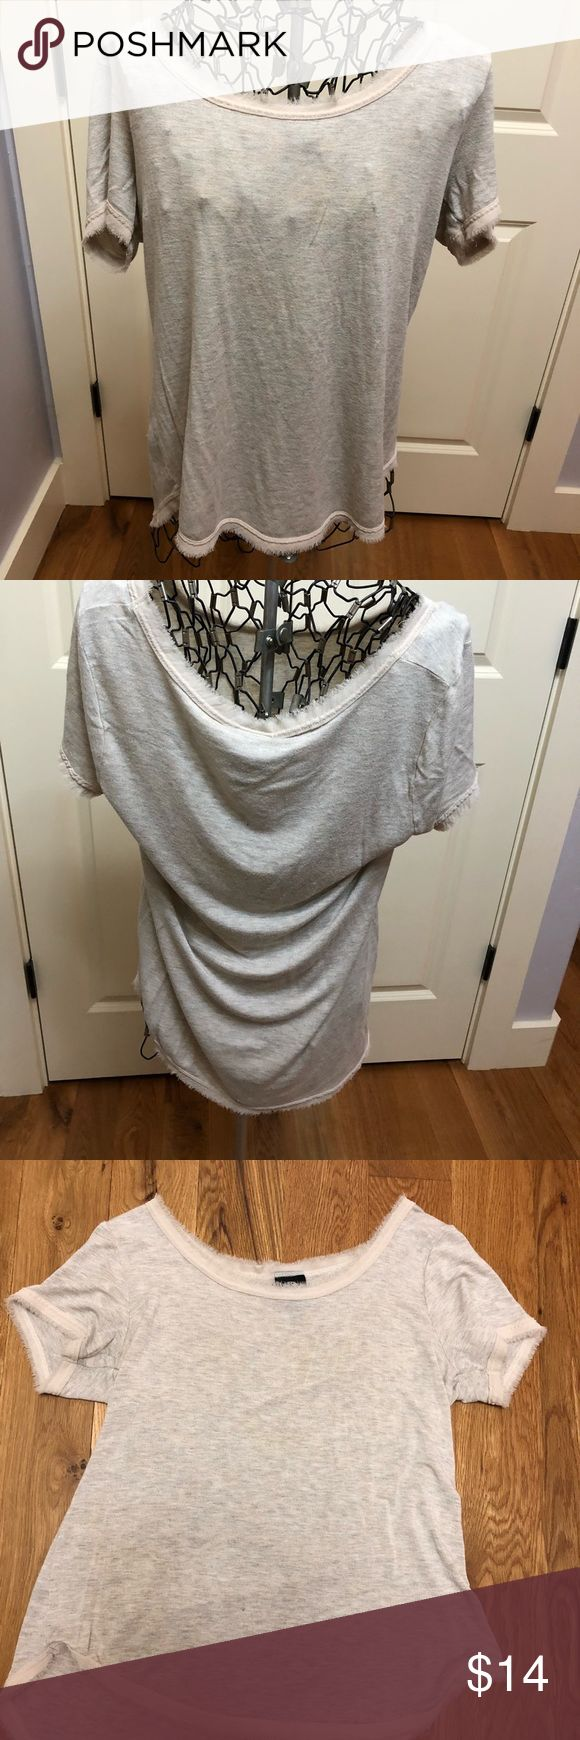 Women's Size Medium Tan Shirt This fun cream women's size M short sleeve top is the perfect T. Comfy yet classy and stylish. Bobeau Tops